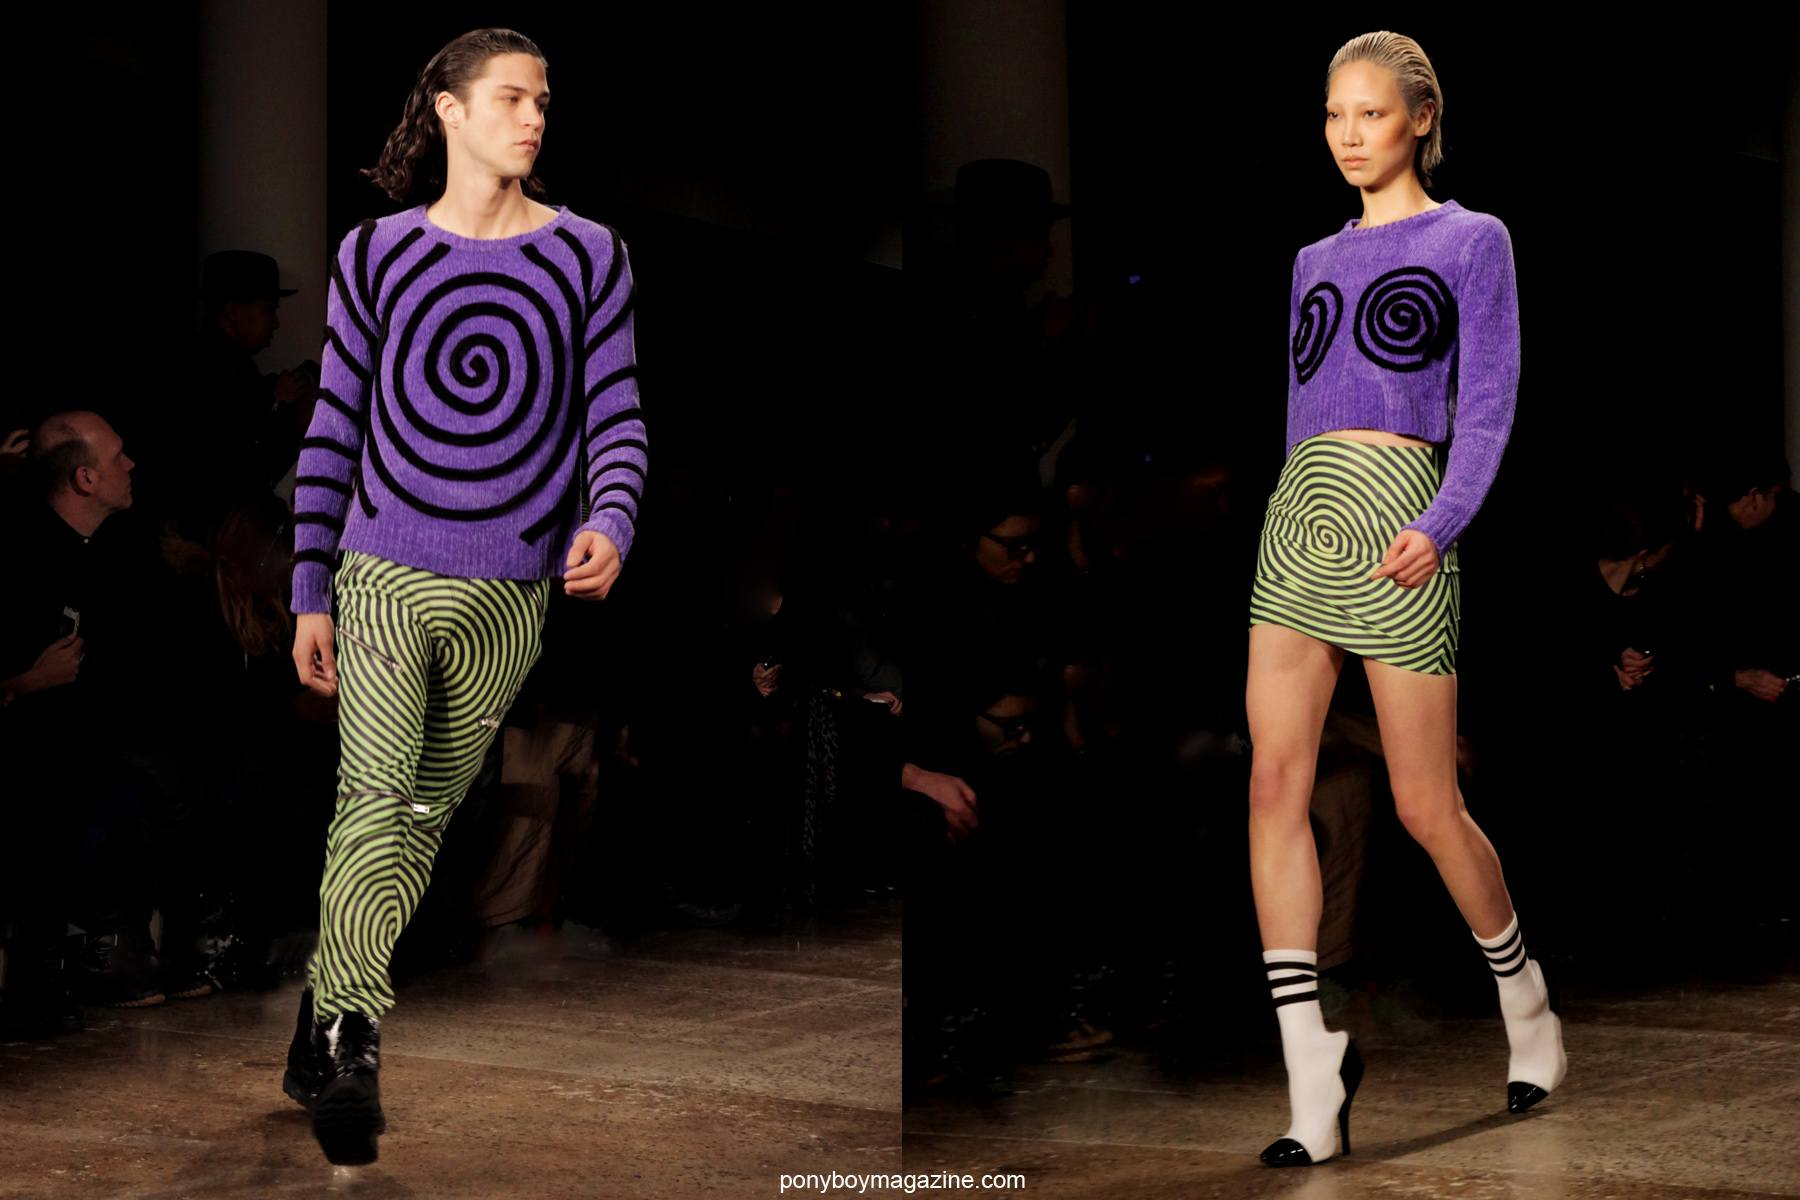 Models in psychedelic prints walk the runway at the Jeremy Scott A/W 2014 show in New York City at Milk Studios. Photographed by Alexander Thompson for Ponyboy Magazine.